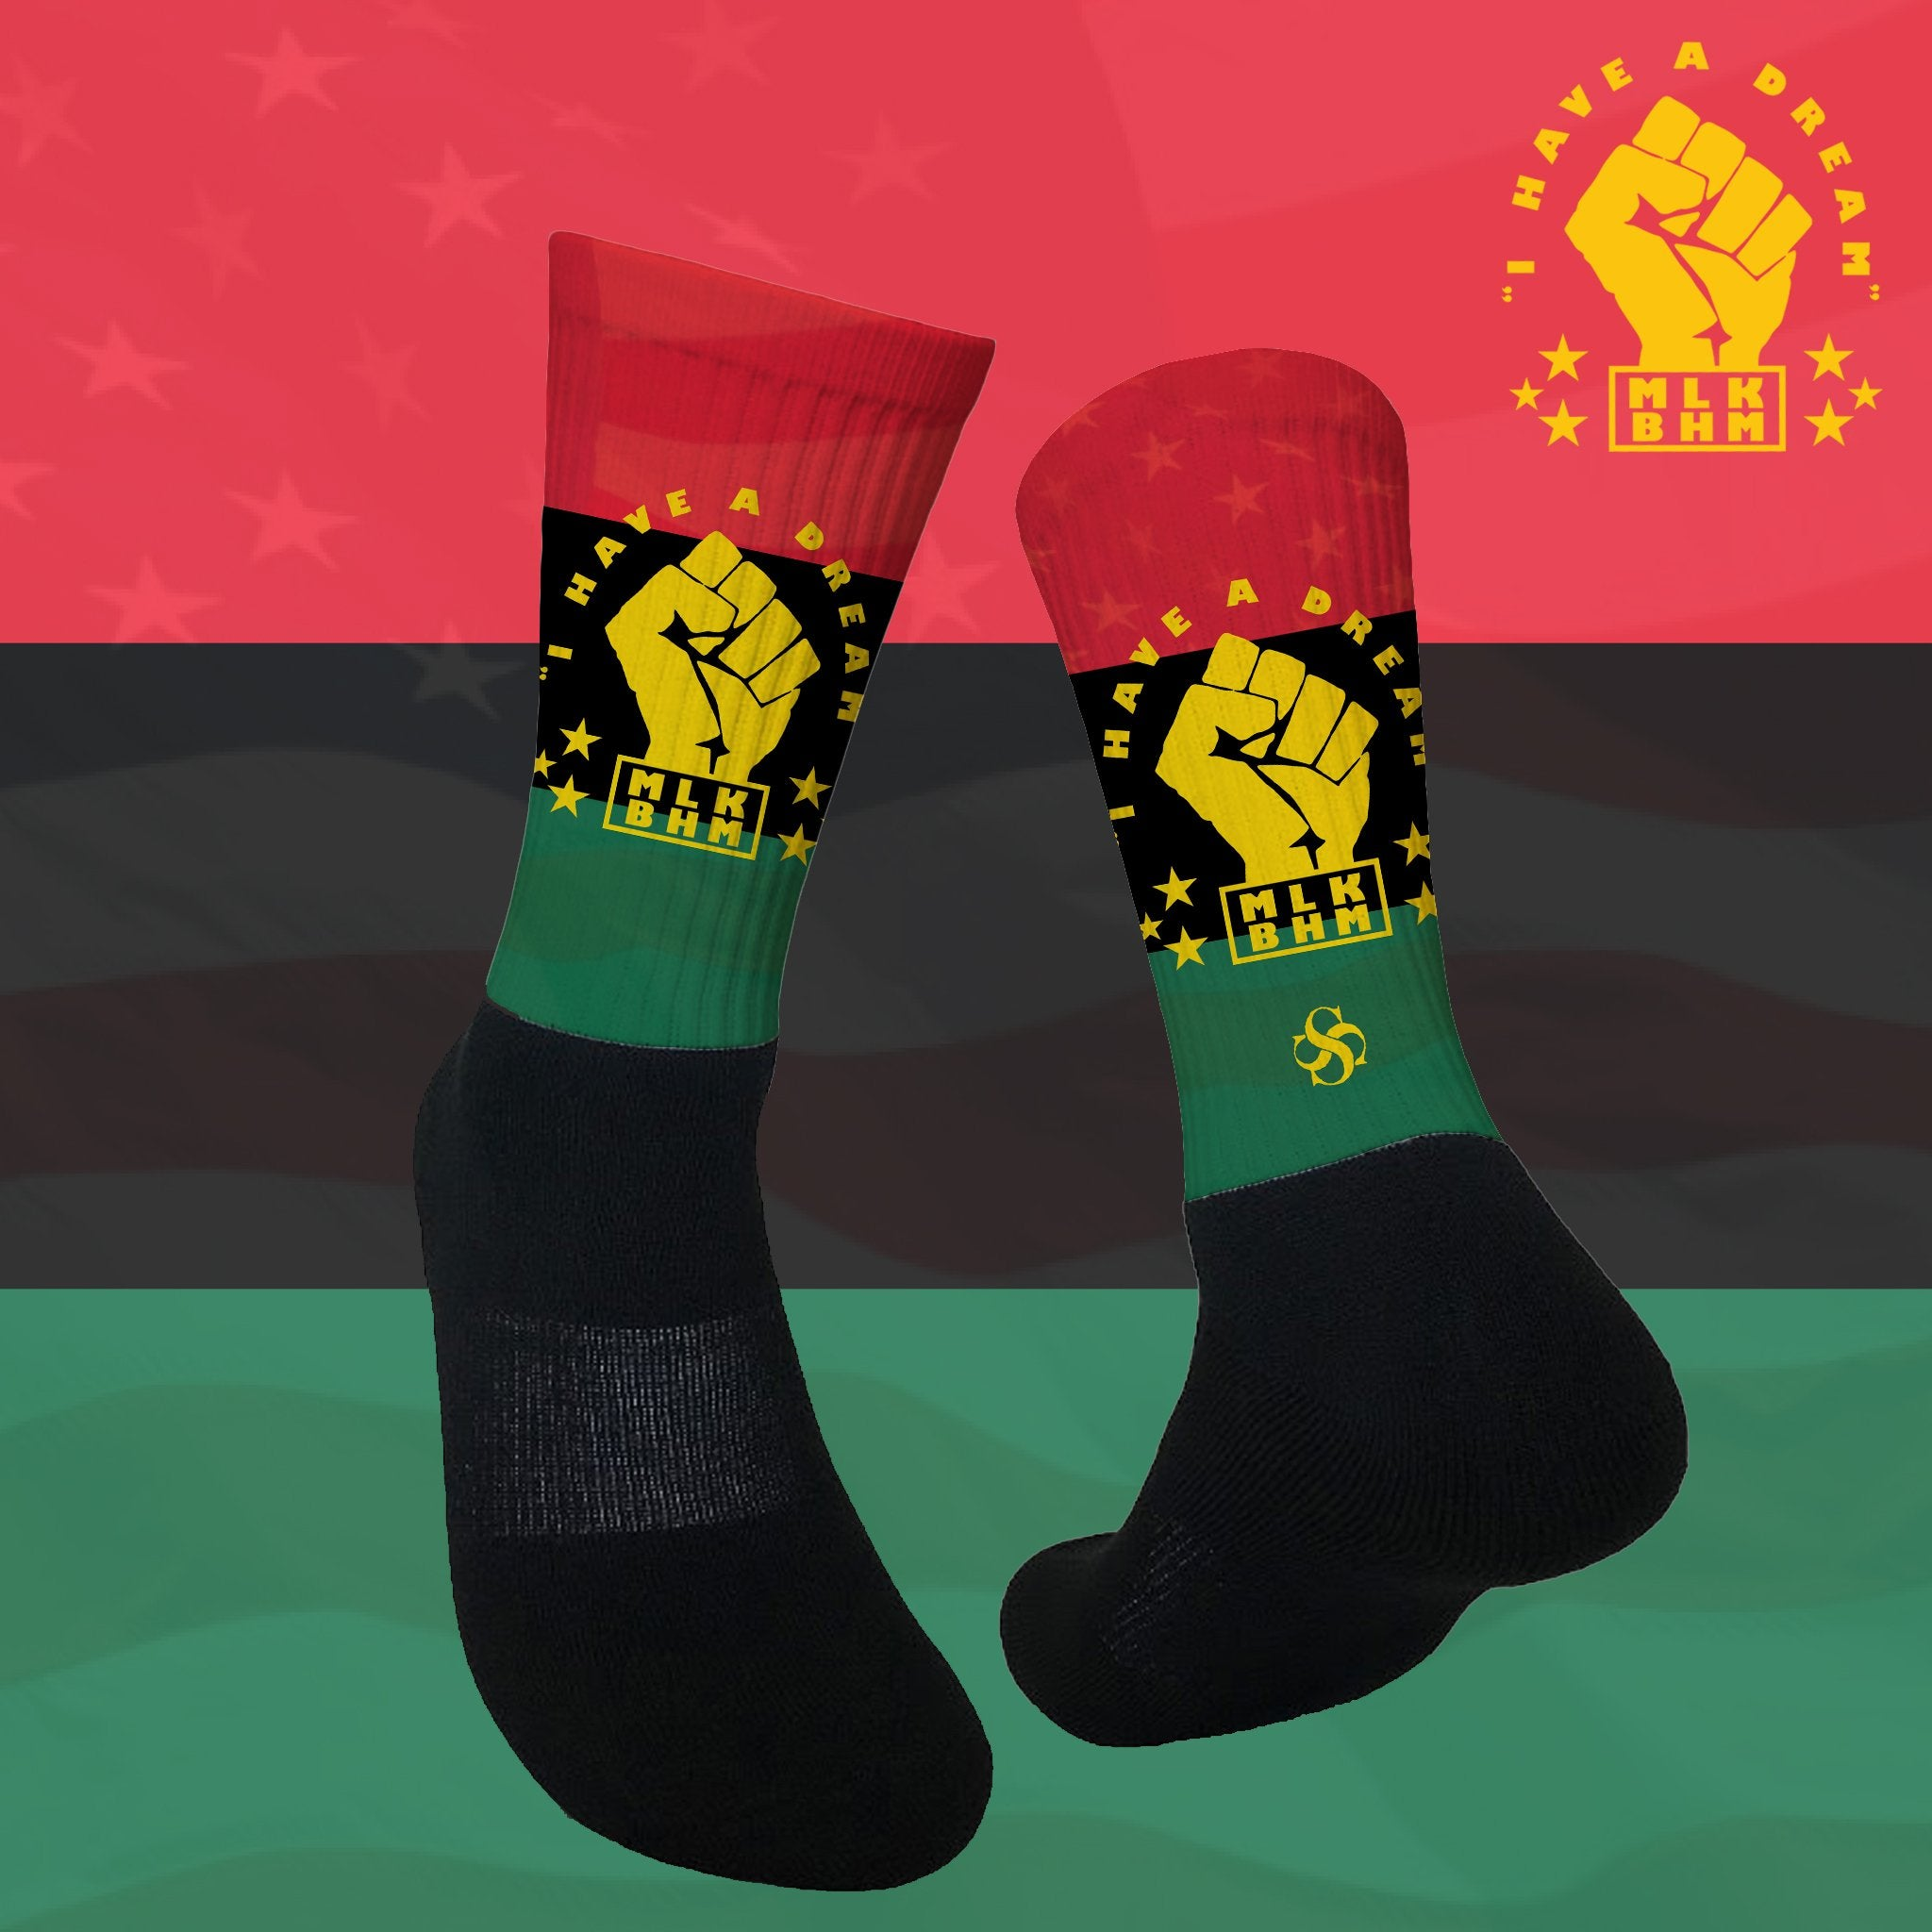 MLK - I Have A Dream Socks!